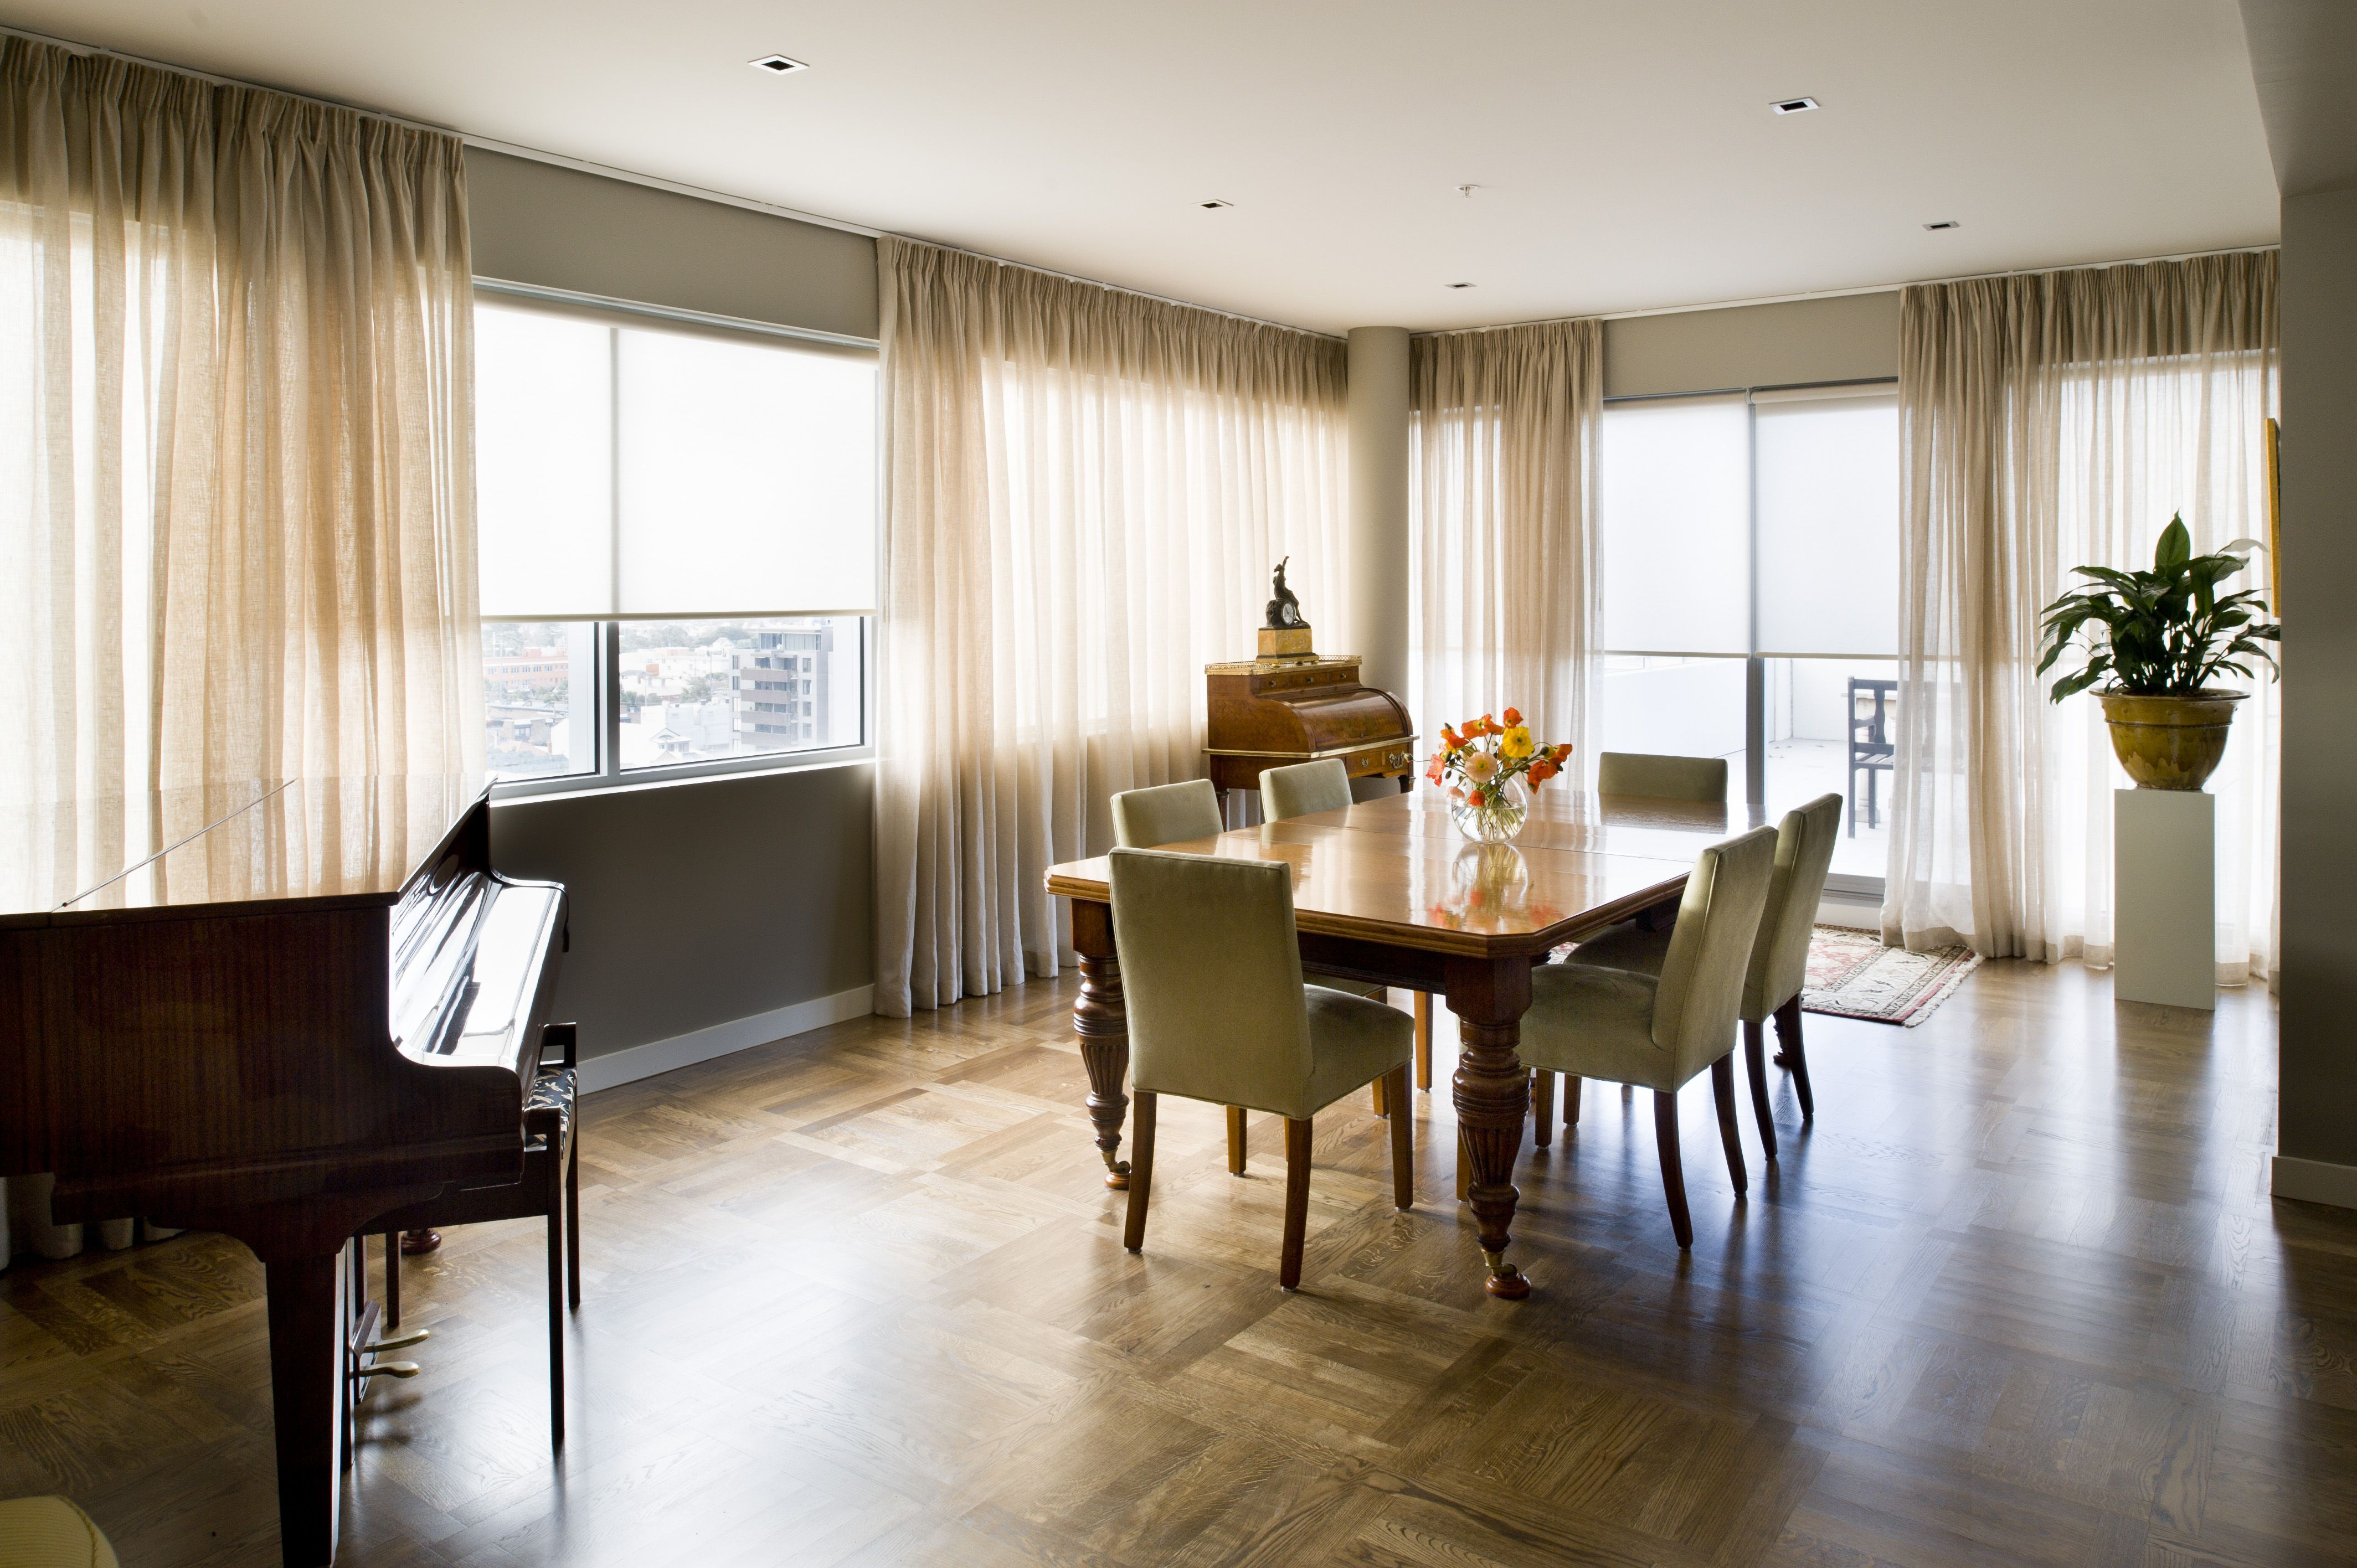 Sheer Curtains Offering A Soft Filtered View With